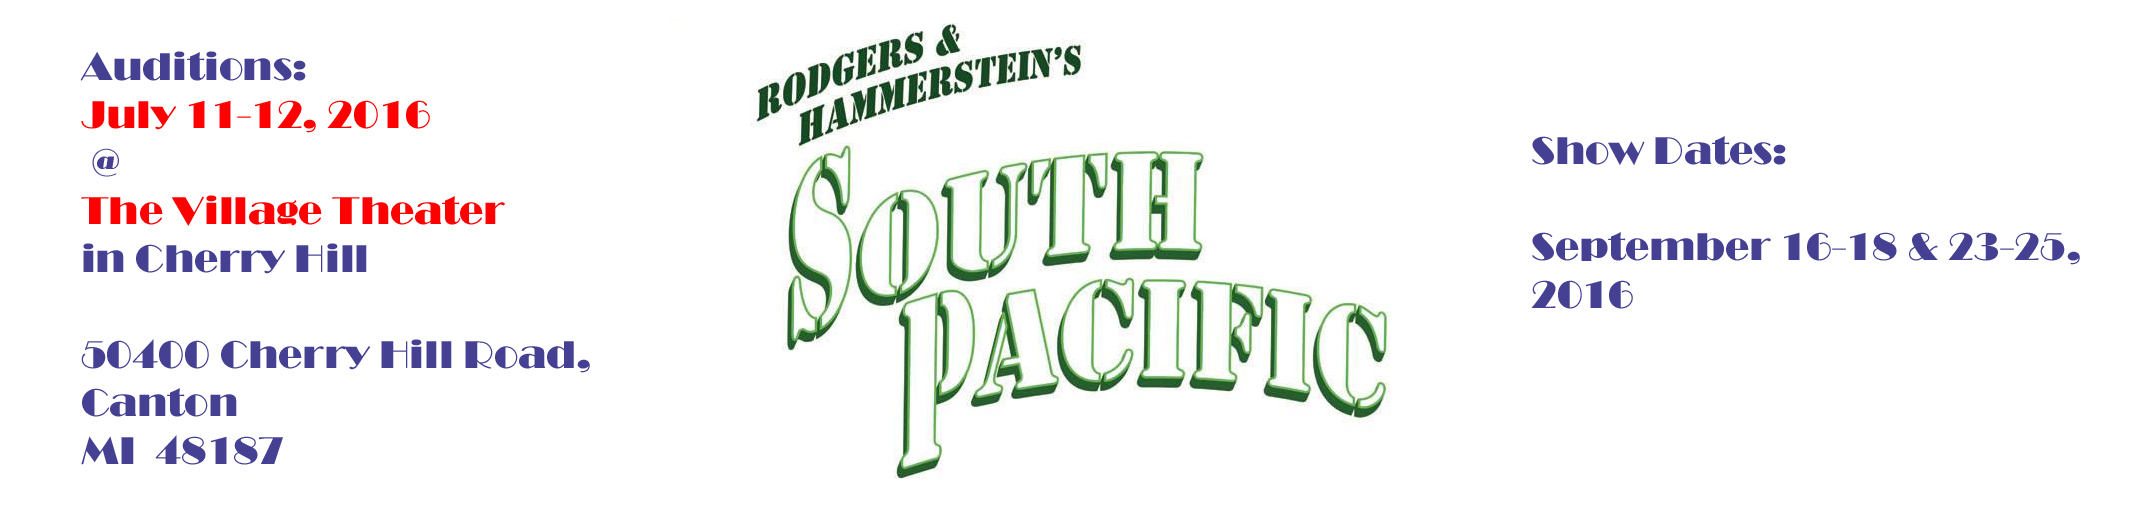 SouthPacificBanner